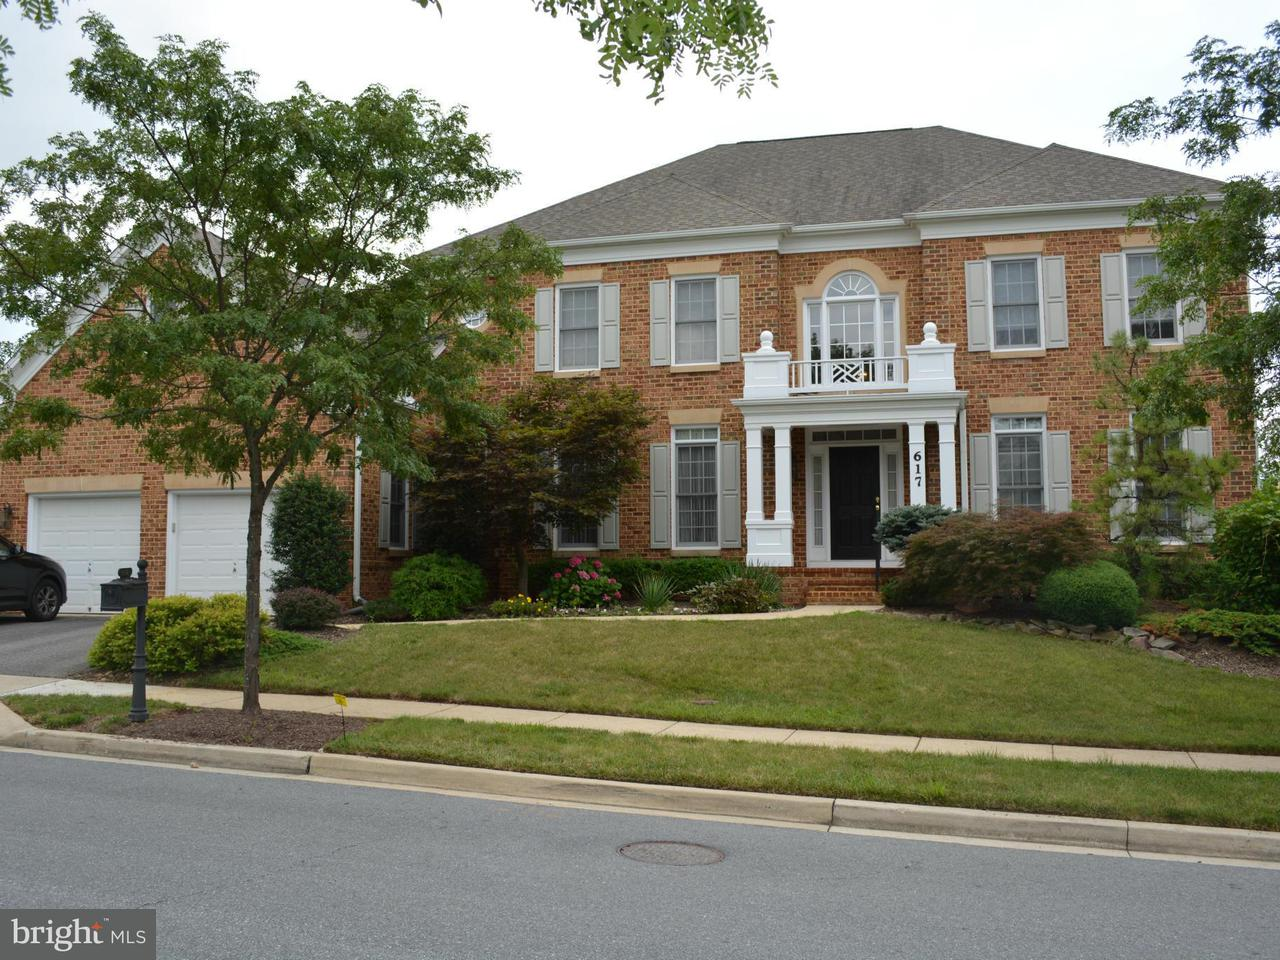 Single Family Home for Sale at 617 OAK KNOLL TER 617 OAK KNOLL TER Rockville, Maryland 20850 United States